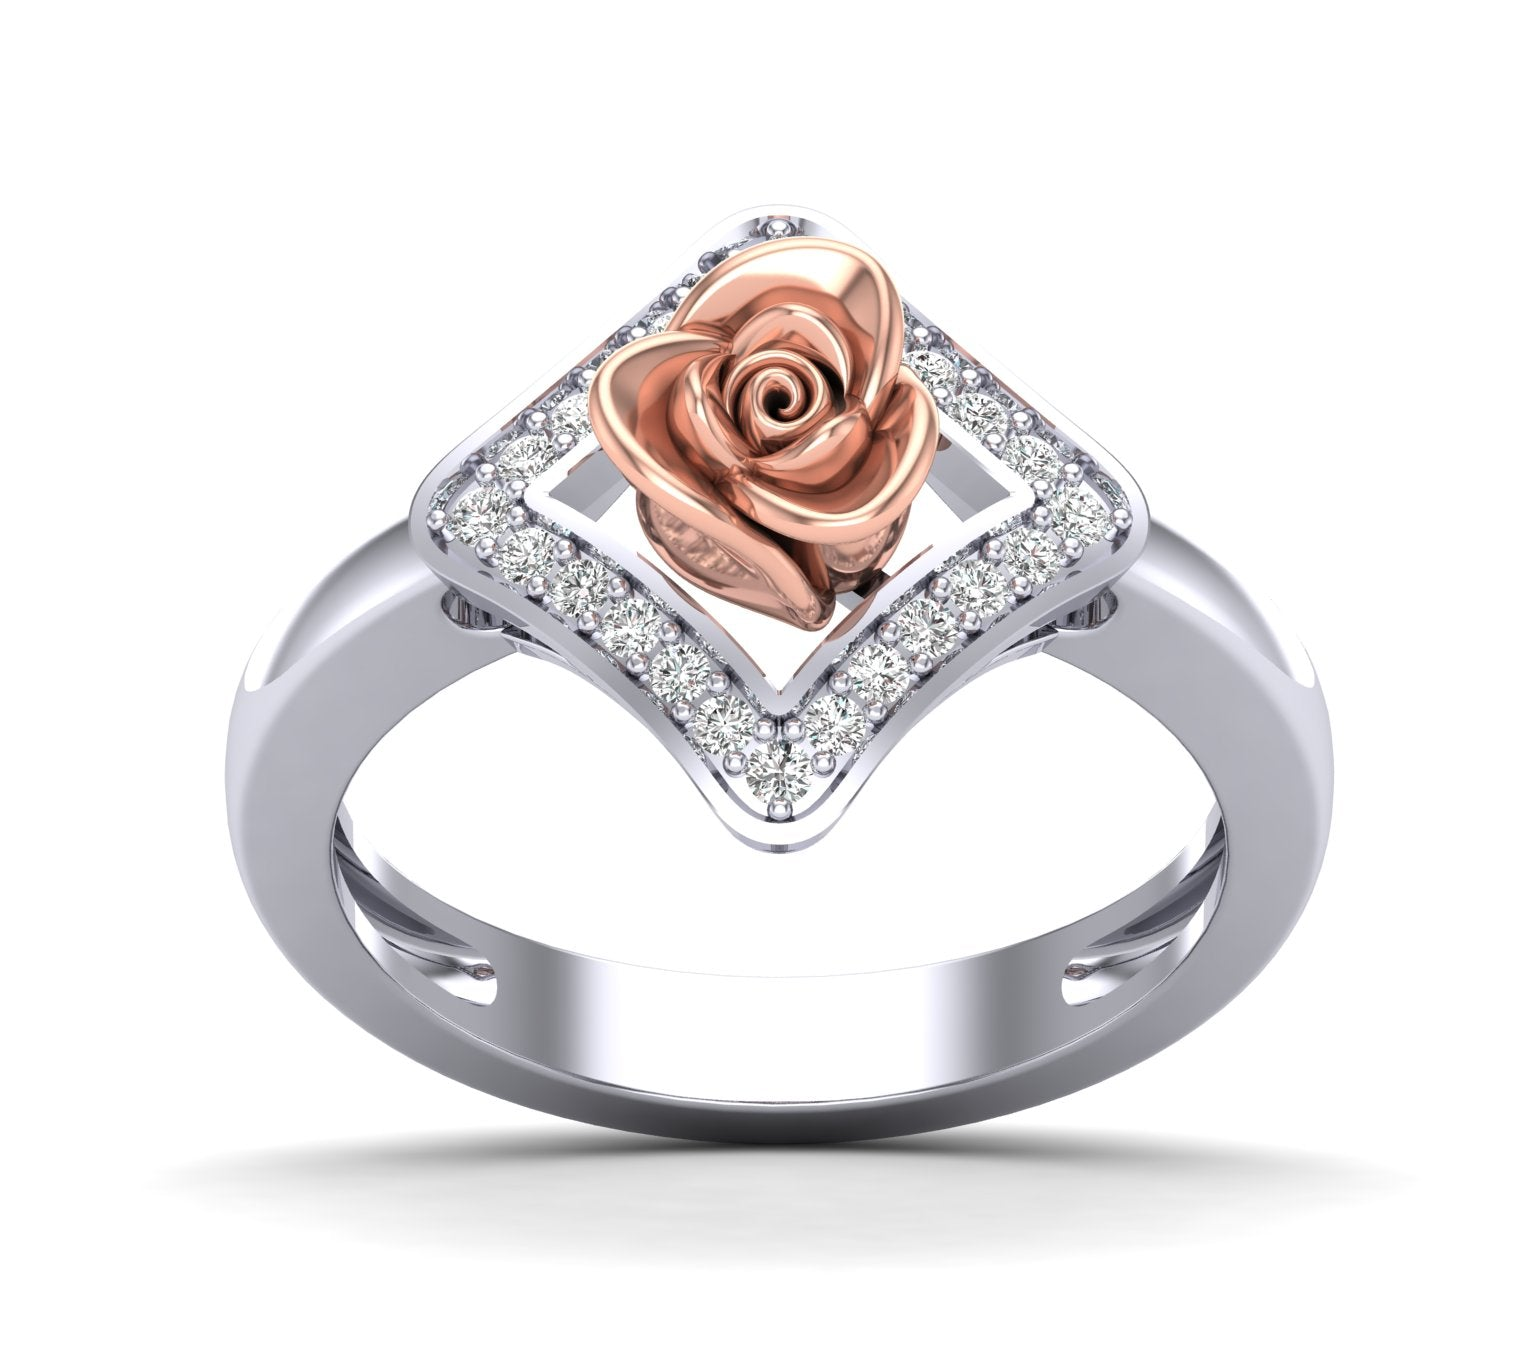 White Gold Rose Inside Square Channel Setting Ring